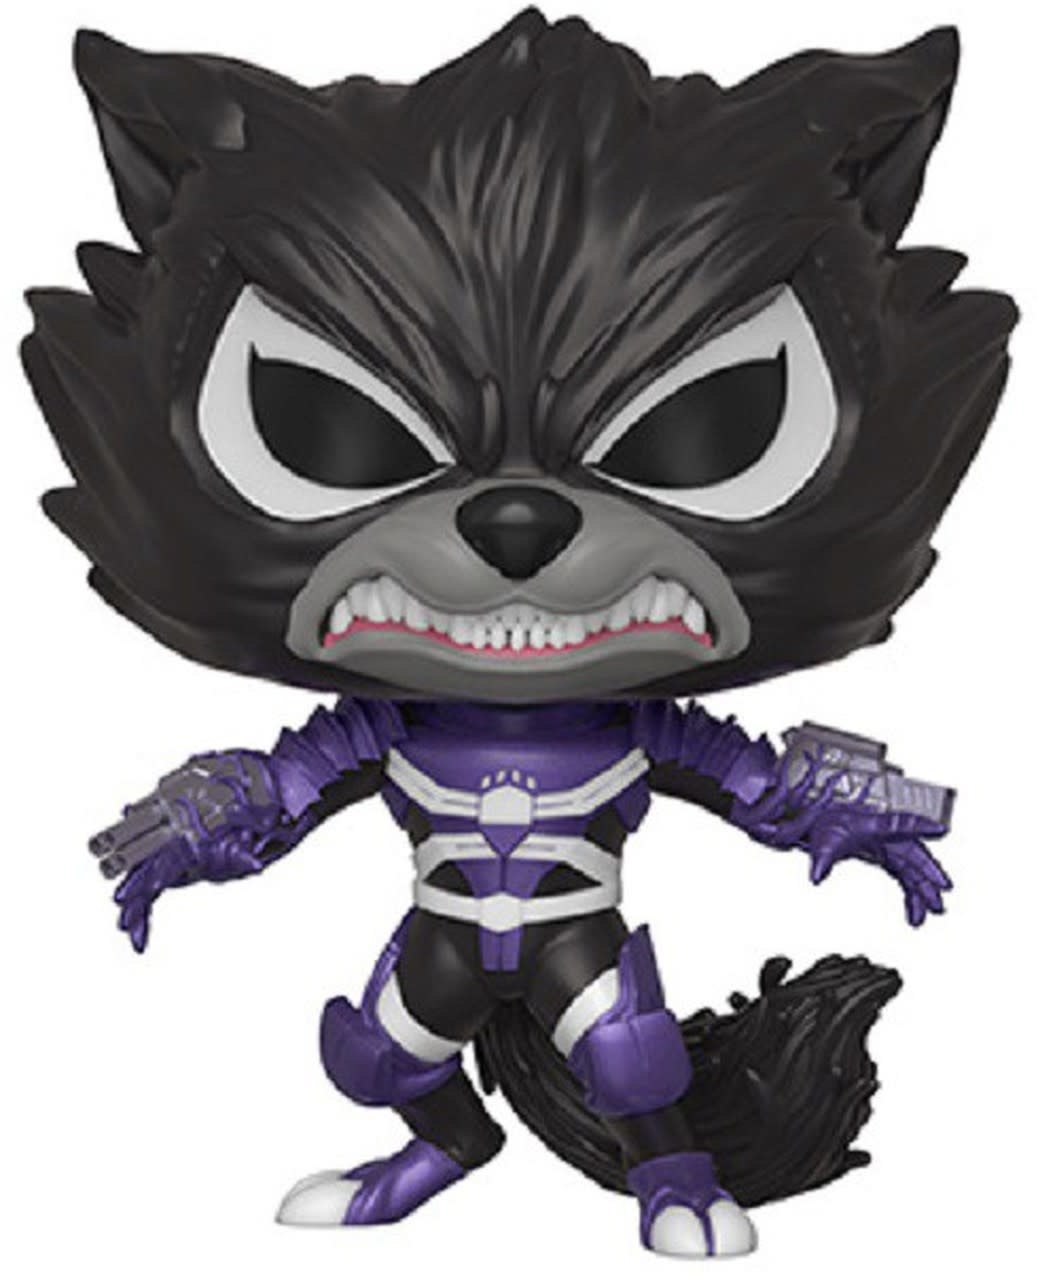 POP Venom Rocket Raccoon